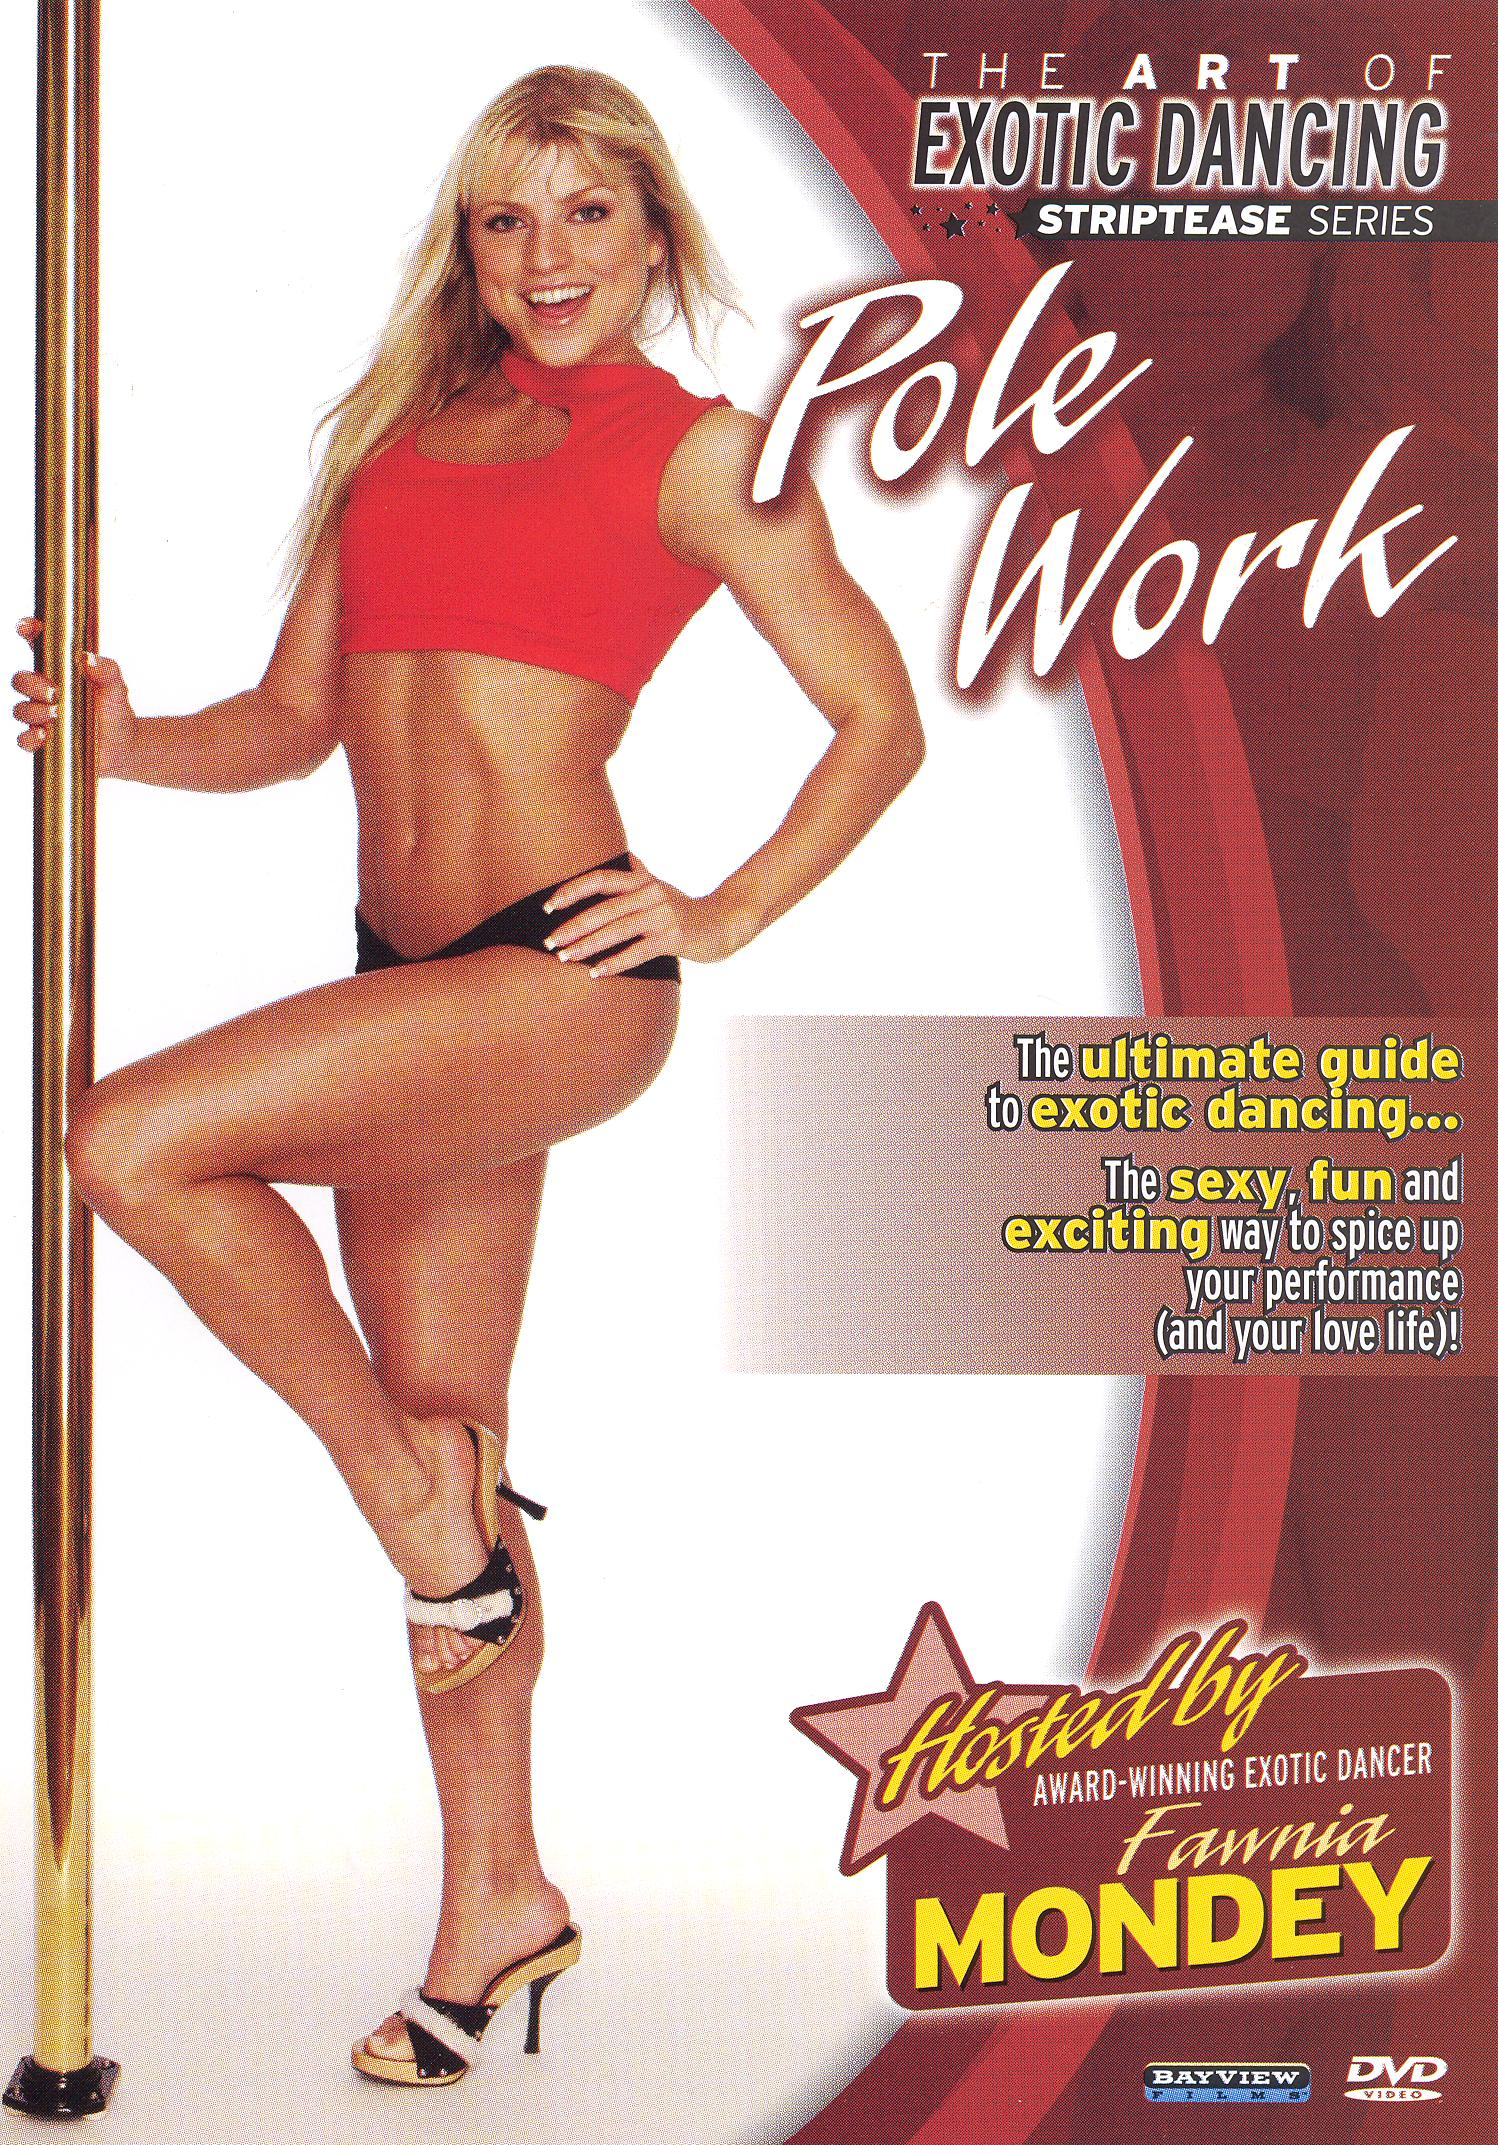 The Art of Exotic Dancing: Striptease Series - Pole Work